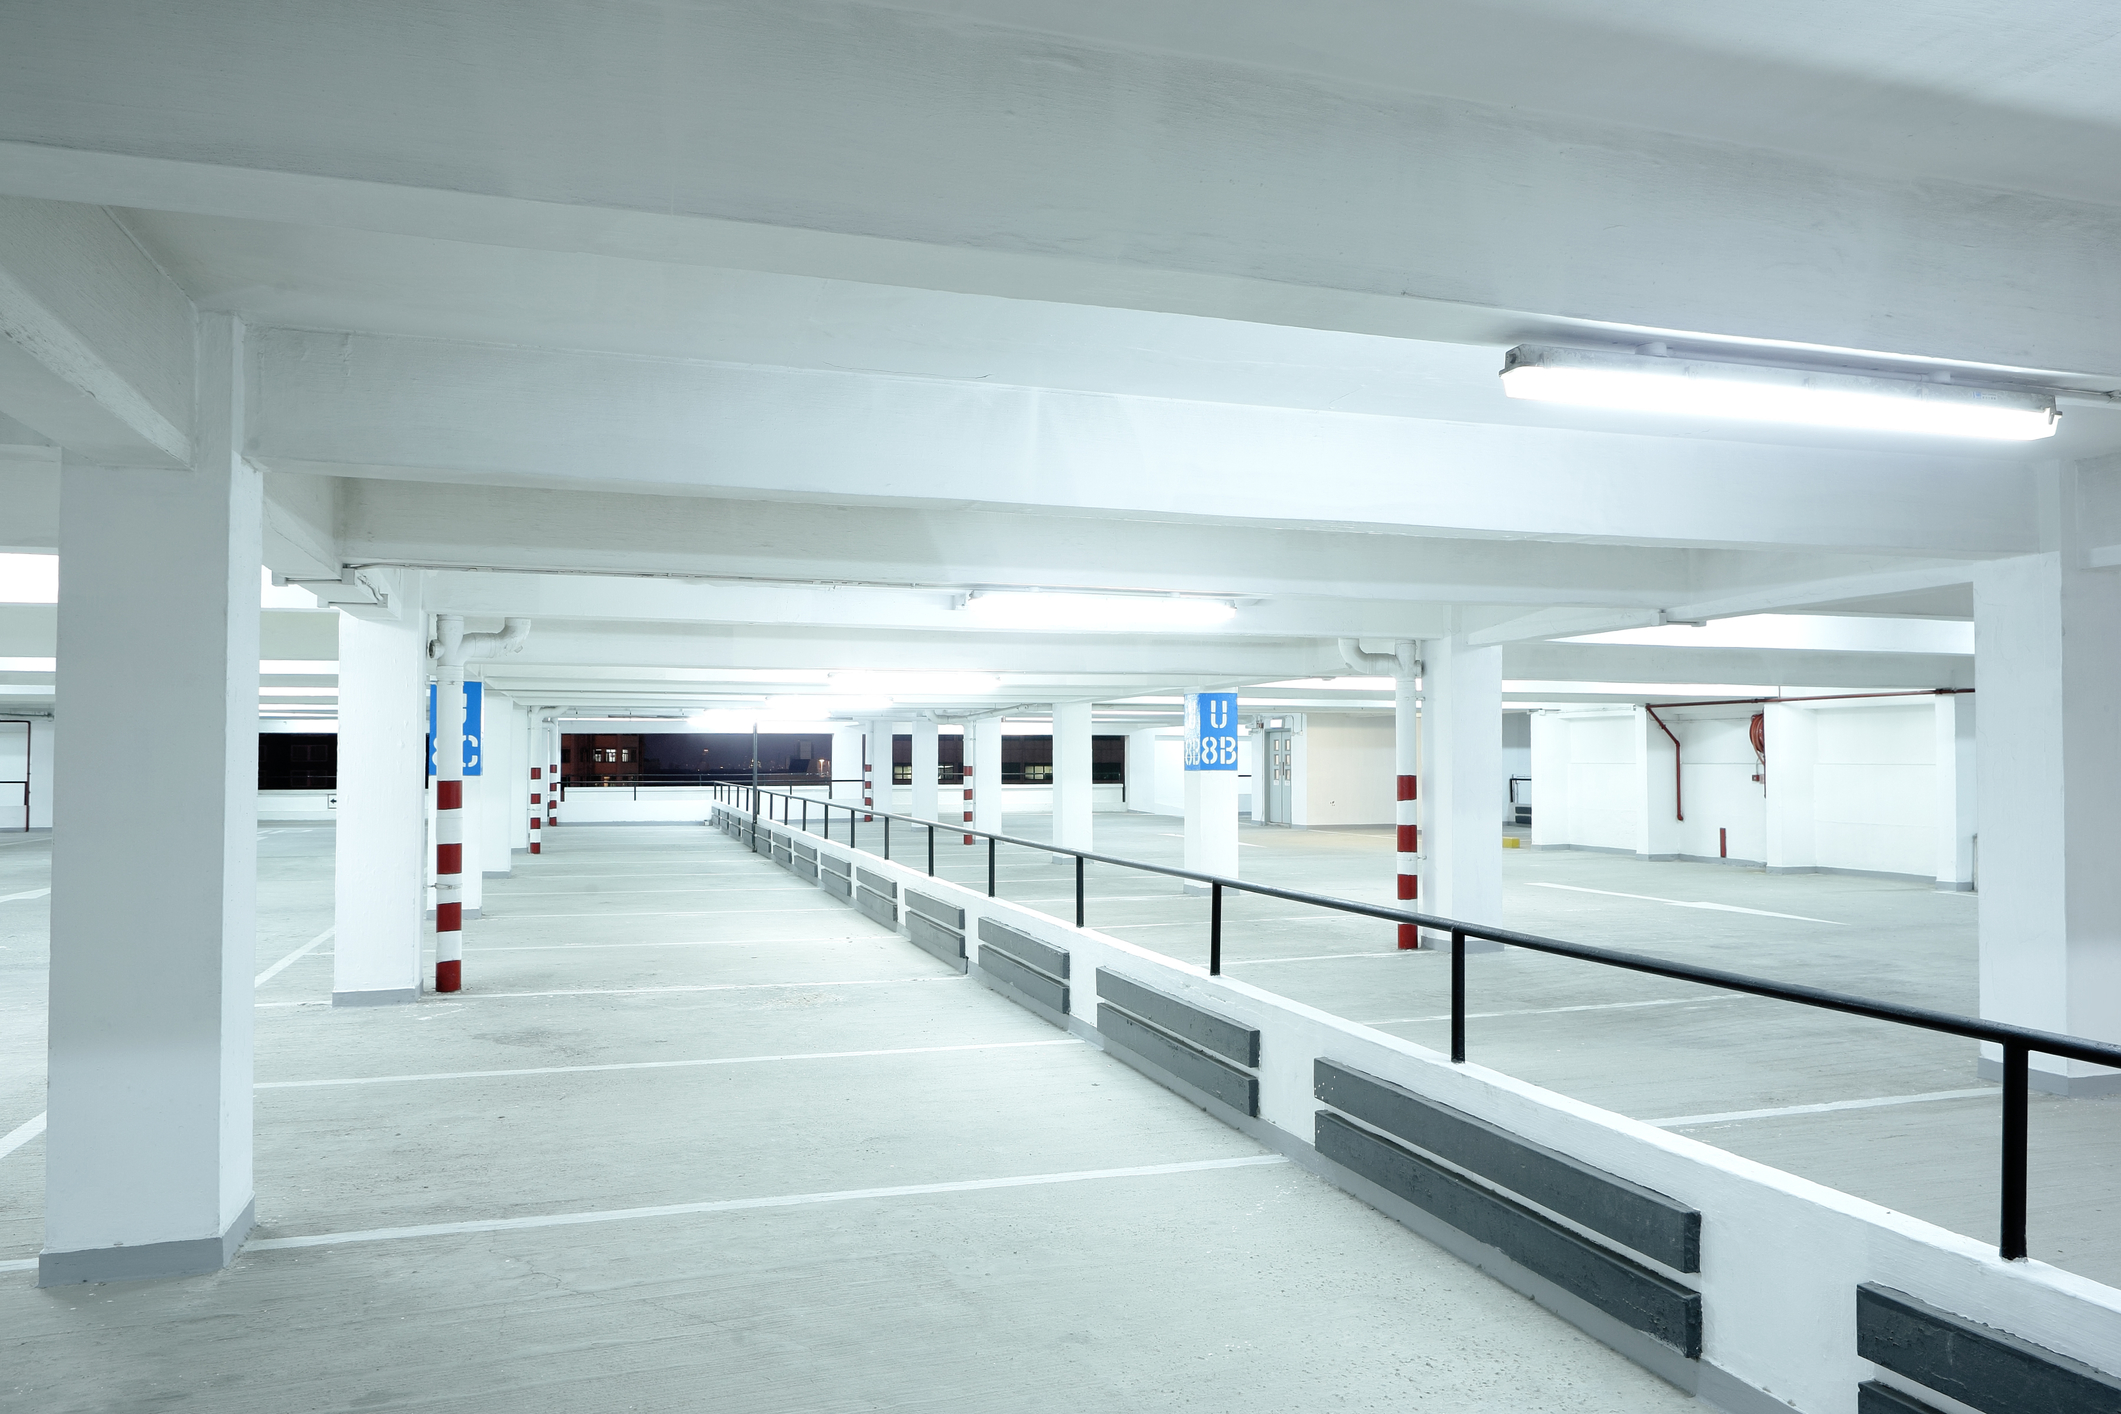 Empty well lit car park. white lights